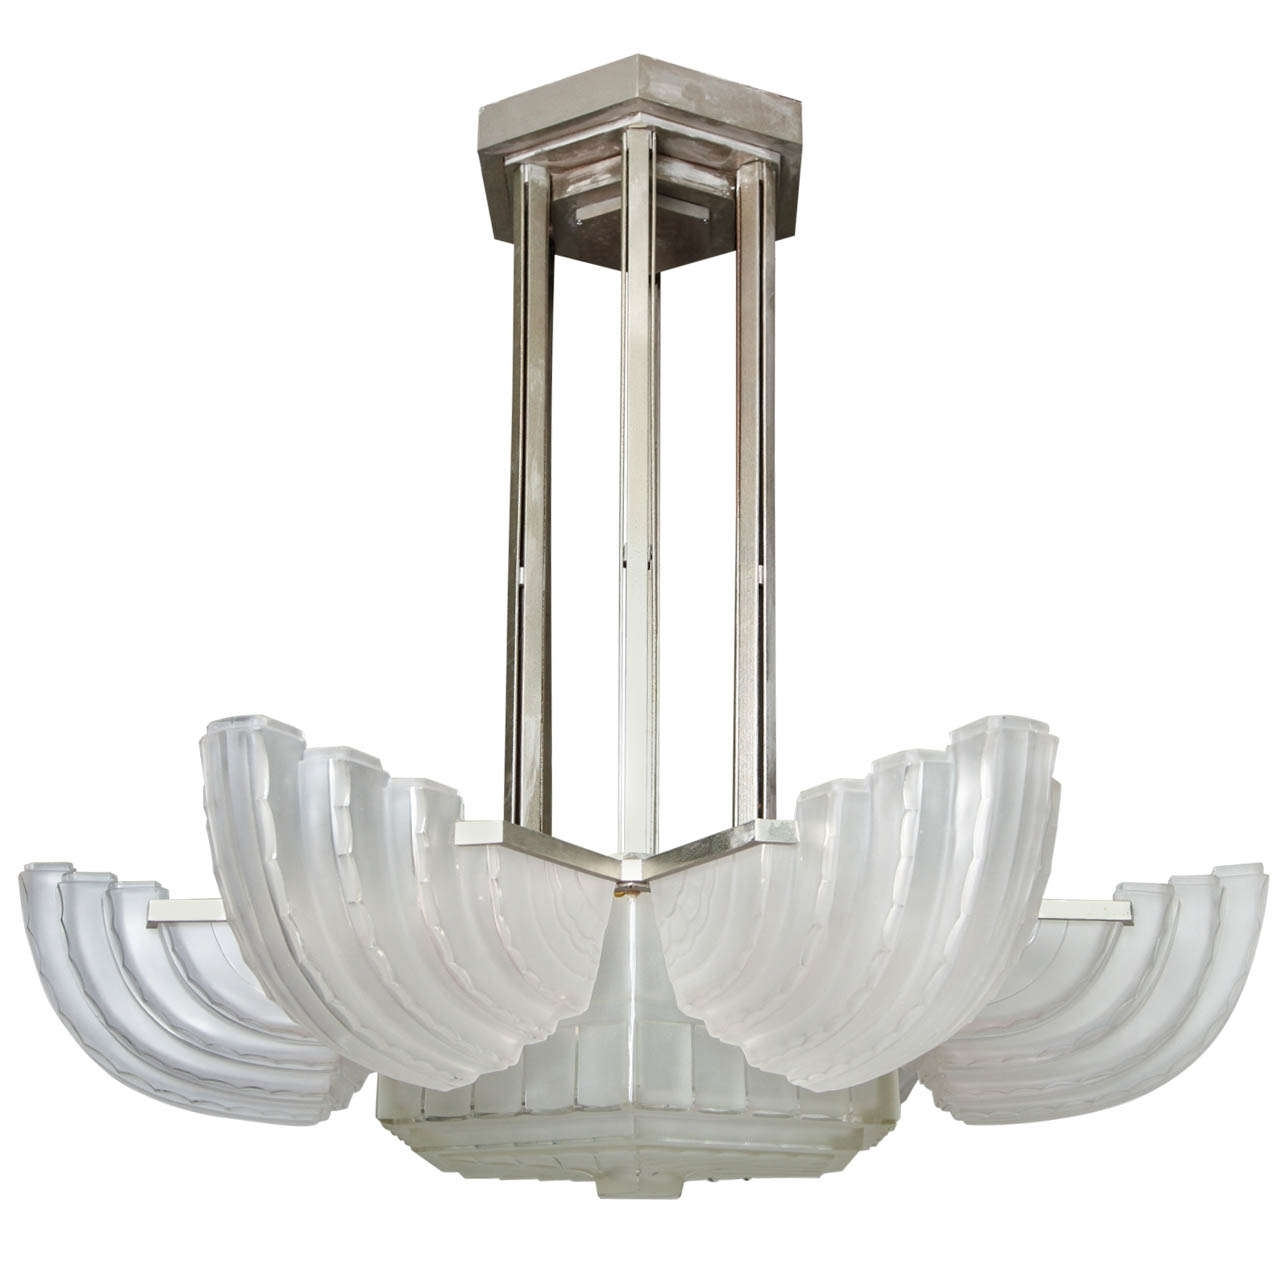 Well Liked Large And Important Art Deco Chandeliersabino – Paul Stamati Gallery Throughout Art Deco Chandelier (View 15 of 15)